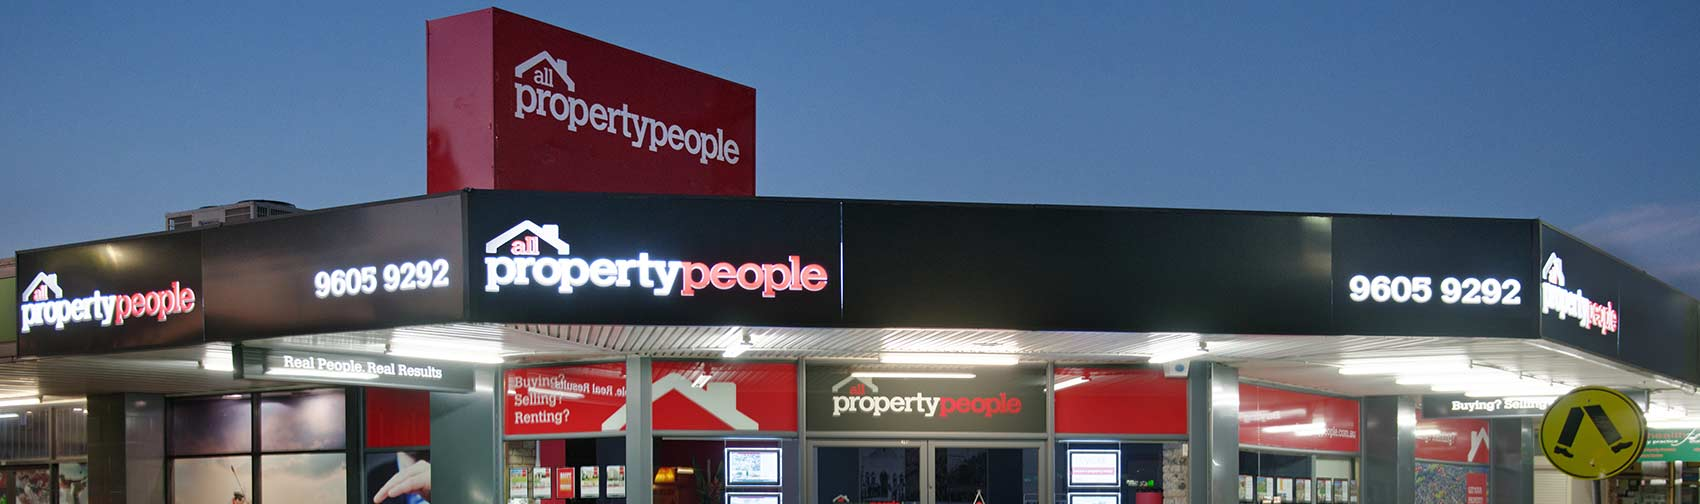 property people jobsfocus